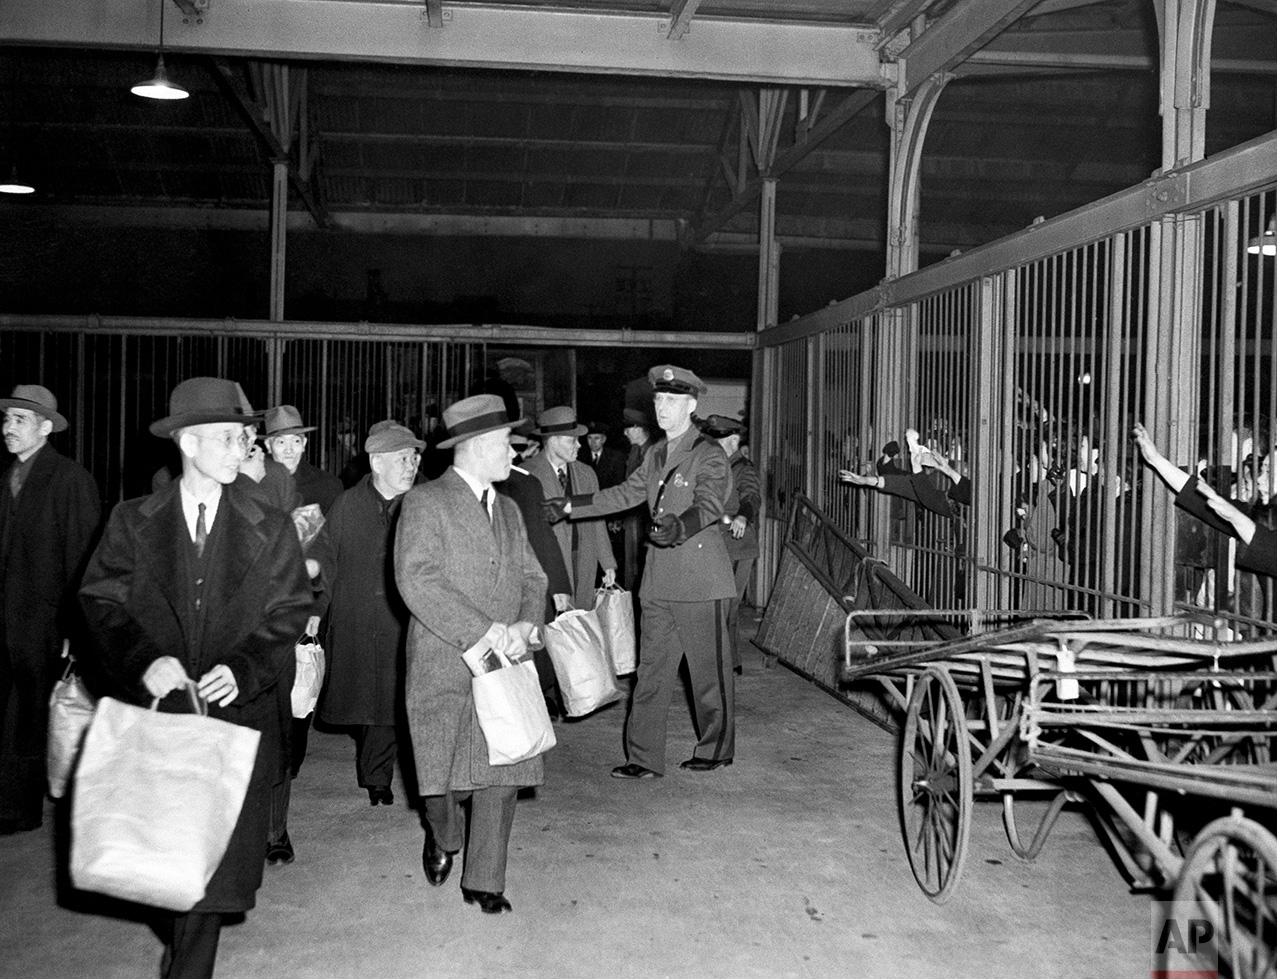 Interned Japanese, carrying belongings in paper bags, leave Seattle by train for Fort Missoula, Montana, March 19, 1942, while relatives waved through station cars, right. A group of 150 internees had been held in the Seattle immigration station. (AP Photo)